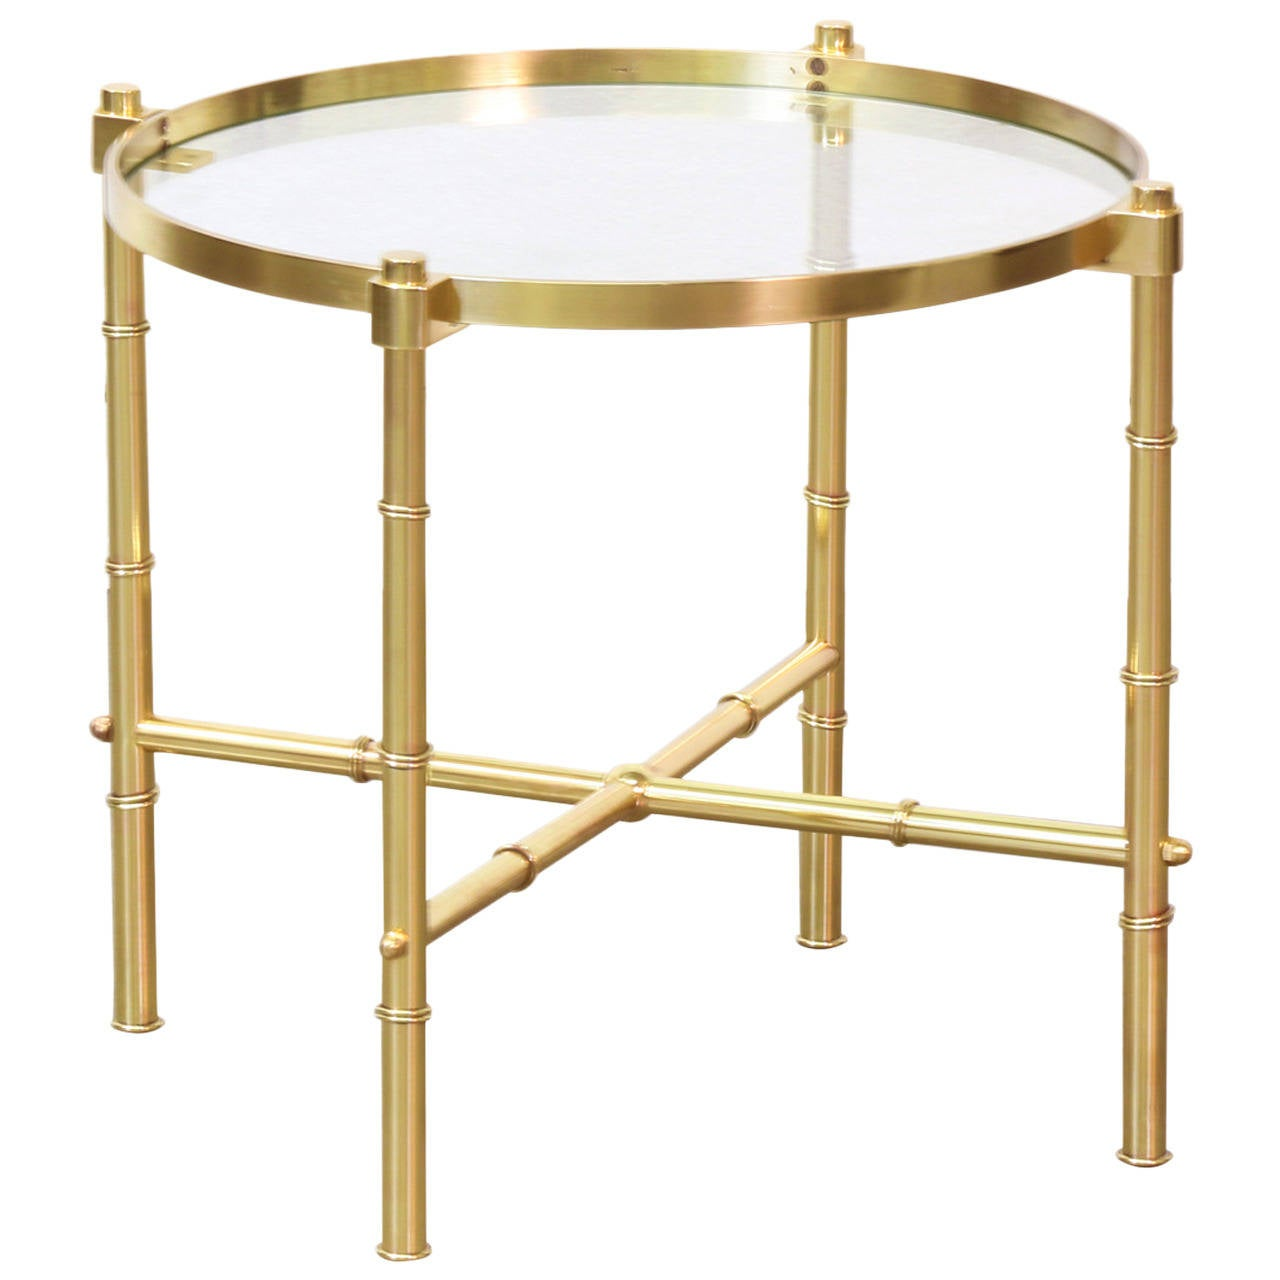 Italian brass faux bamboo side table with glass top at 1stdibs for Bamboo side table